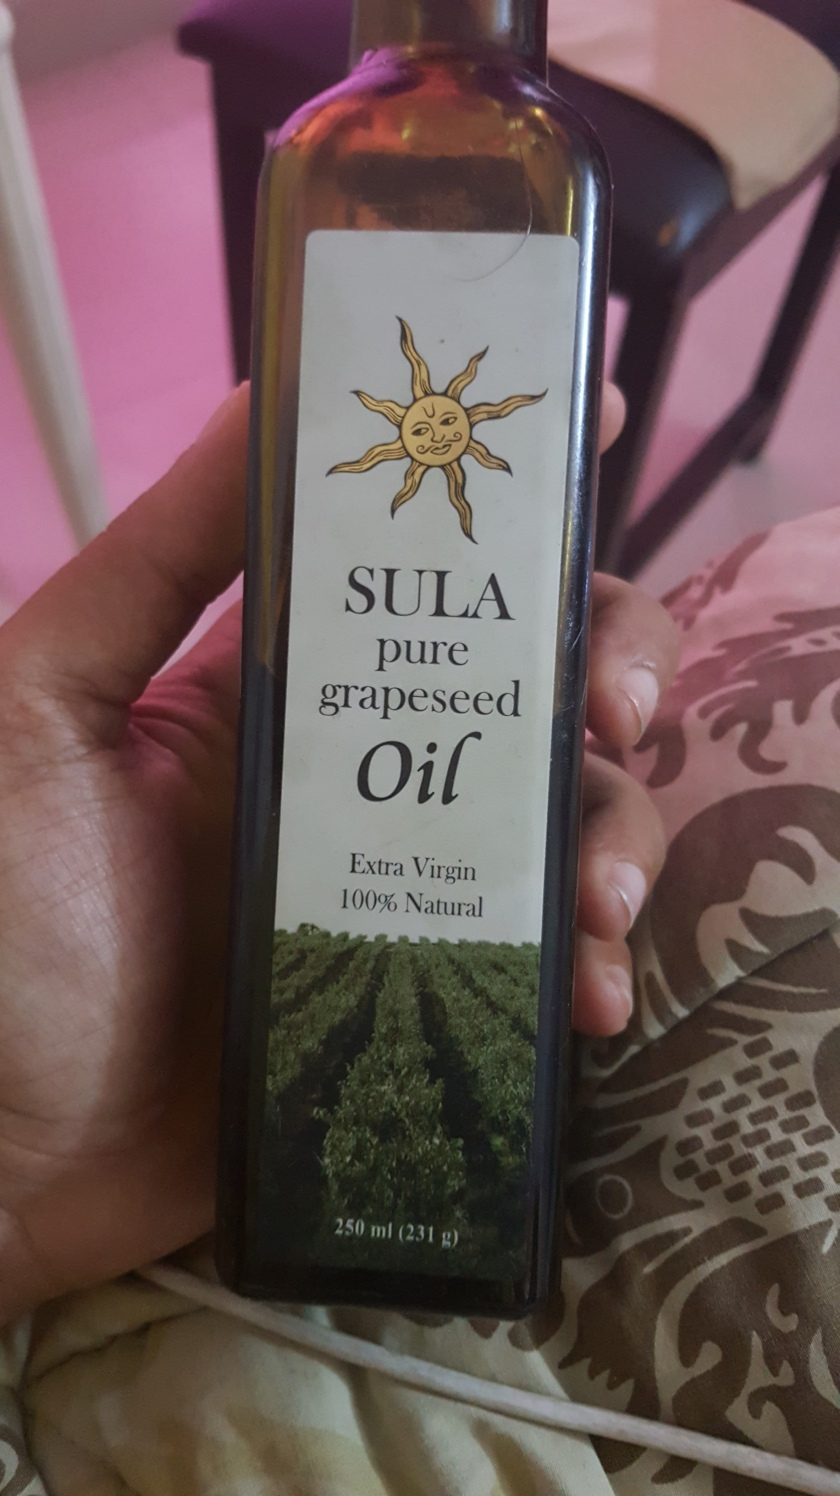 Grapeseed oil from Sula